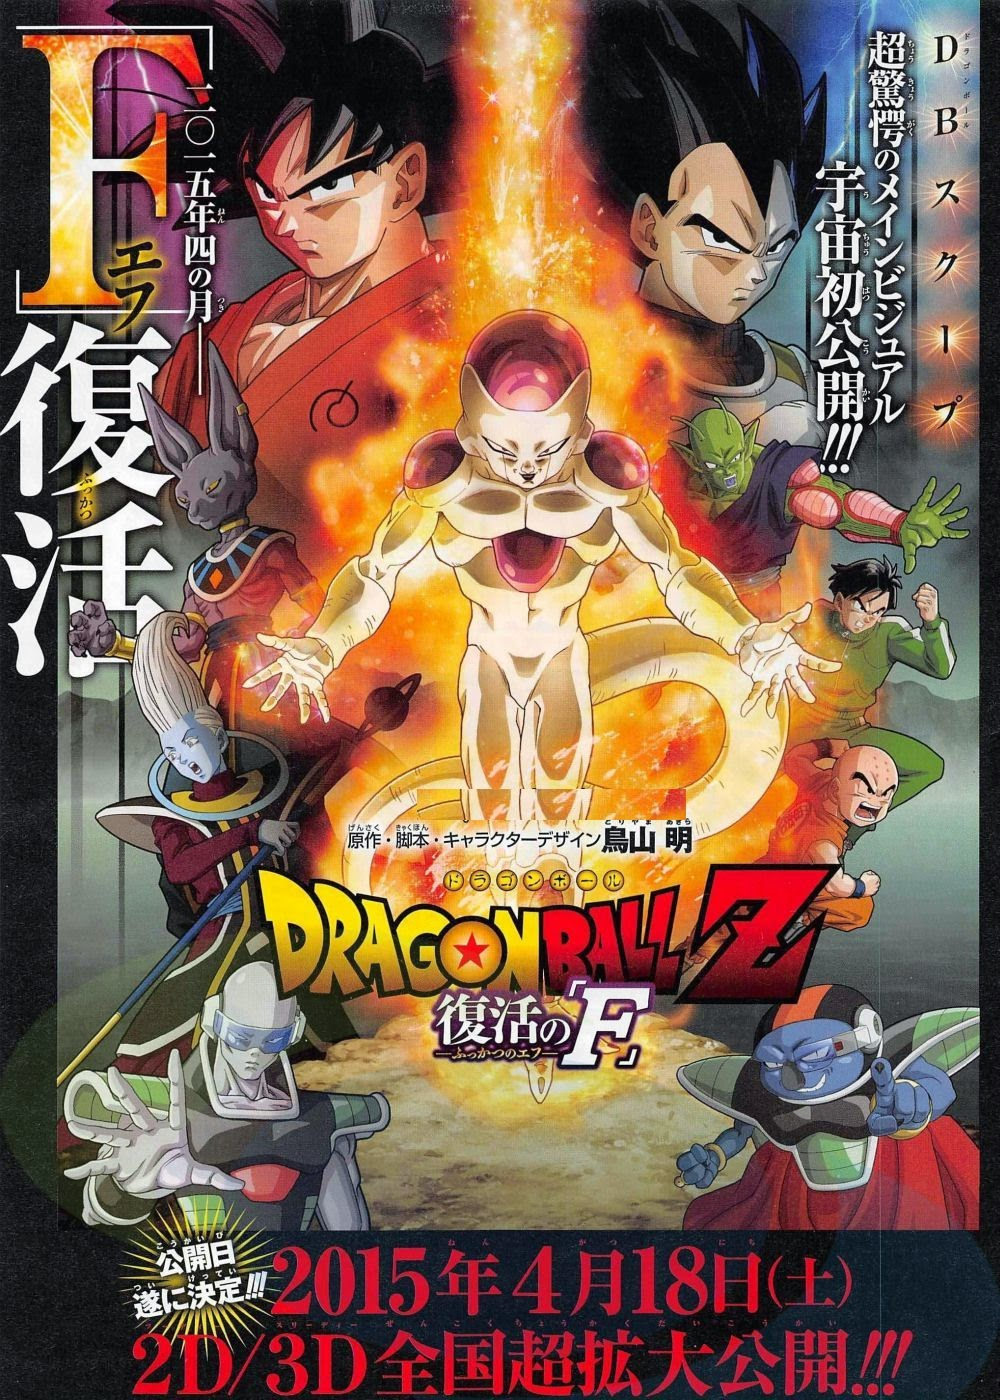 [Anime] Dragon Ball Dbz